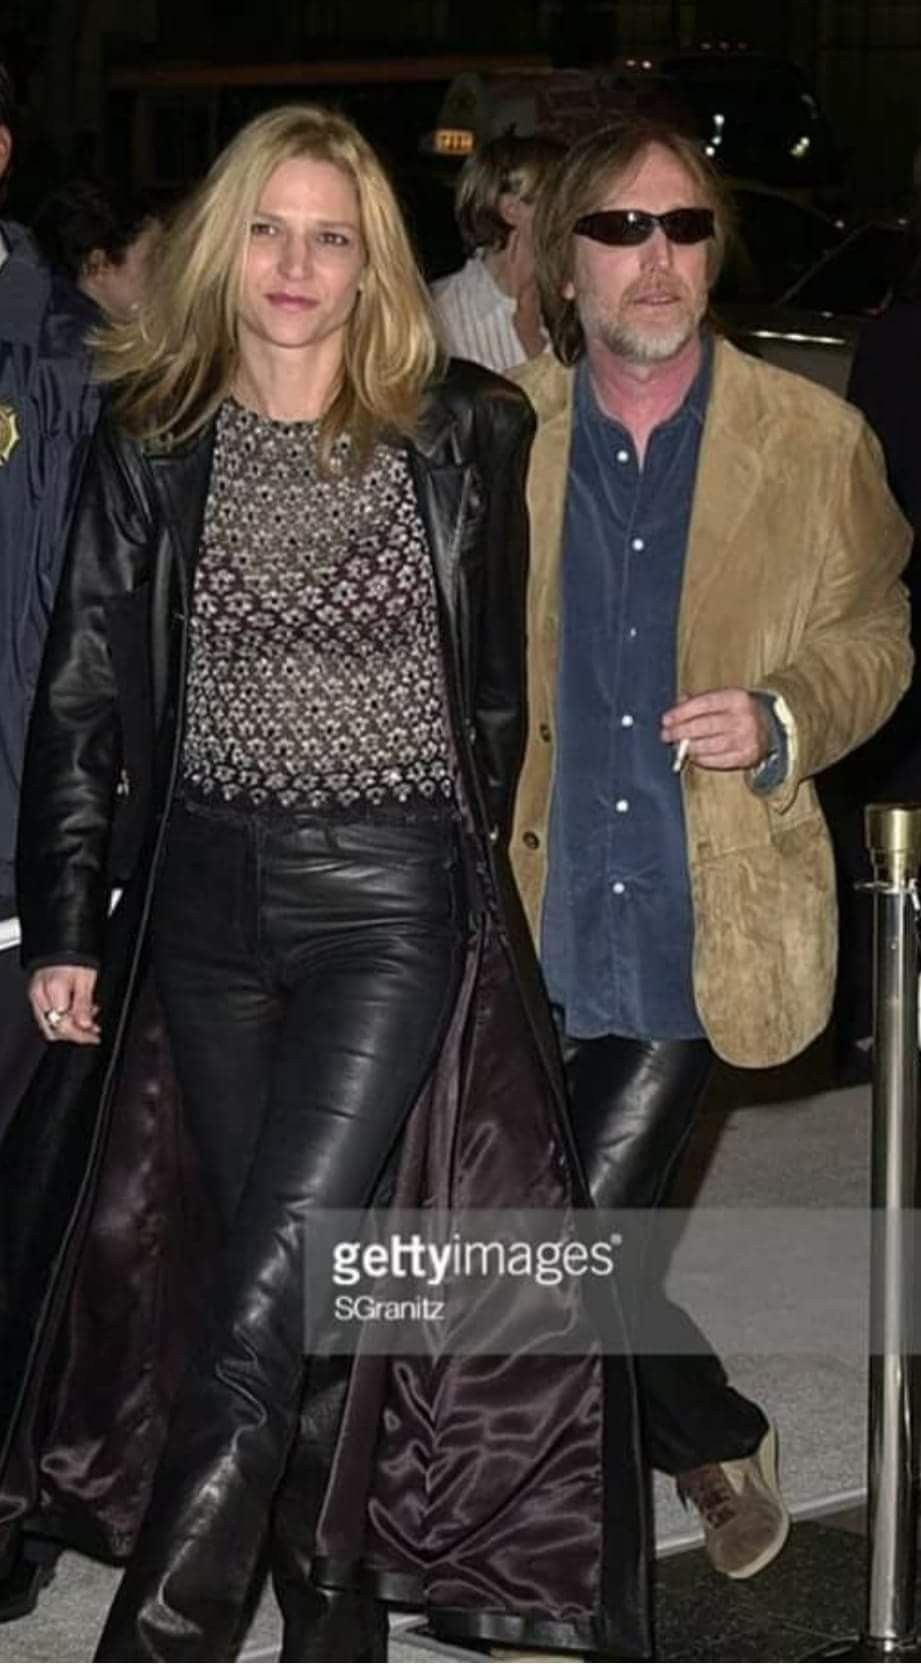 My Favorite Couple With Images Tom Petty Petty Beautiful People